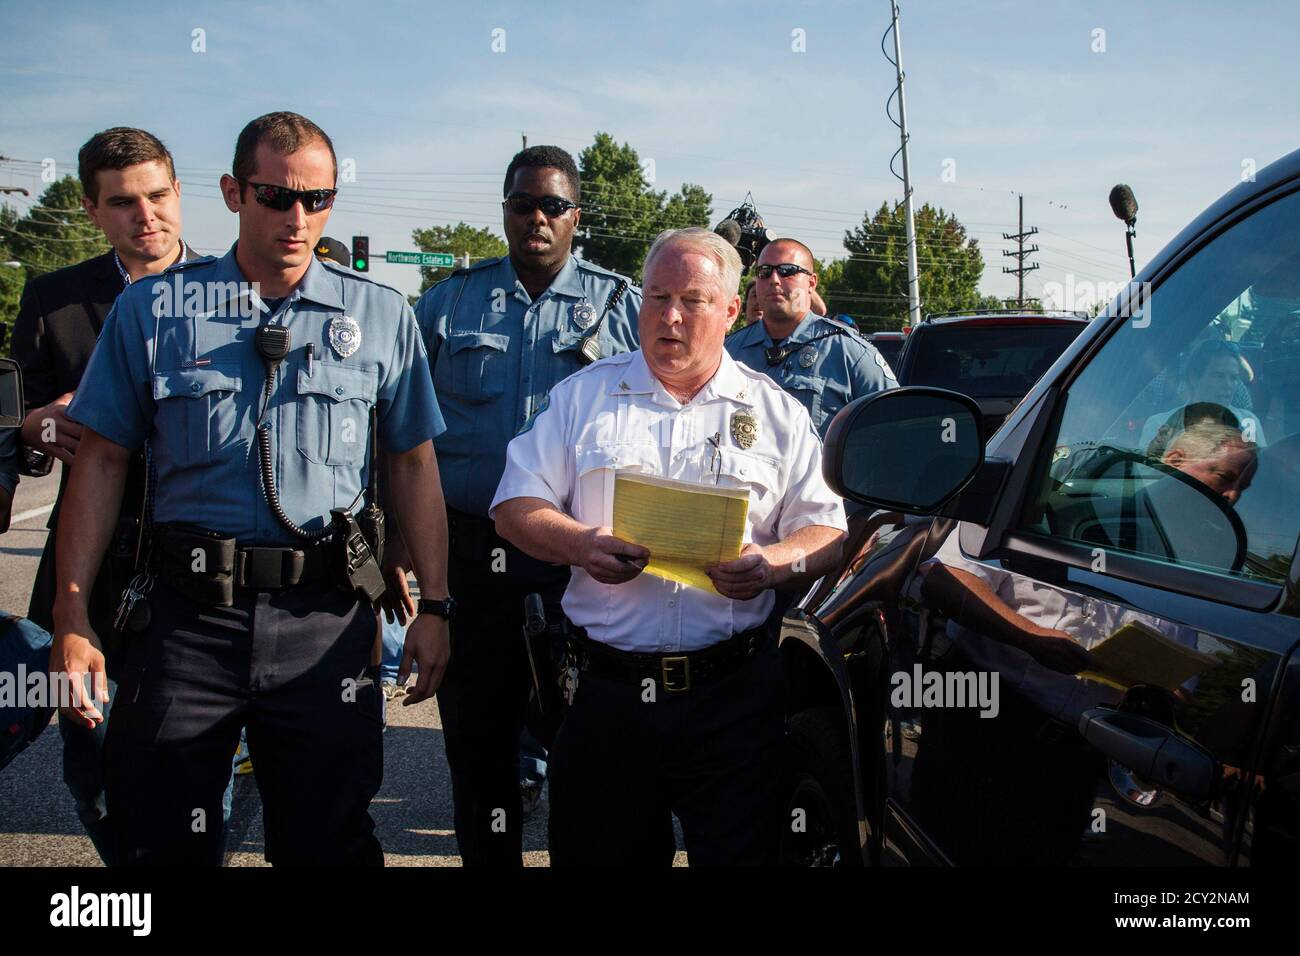 Ferguson Police Chief Thomas Jackson departs after announcing the name of the officer involved in the shooting of Michael Brown as officer Darren Wilson, in Ferguson, Missouri August 15, 2014. The briefing was held near a QuikTrip convenience store that had been burned amid protests over the shooting of Brown, 18, last Saturday. REUTERS/Lucas Jackson (UNITED STATES - Tags: CIVIL UNREST CRIME LAW) Stock Photo